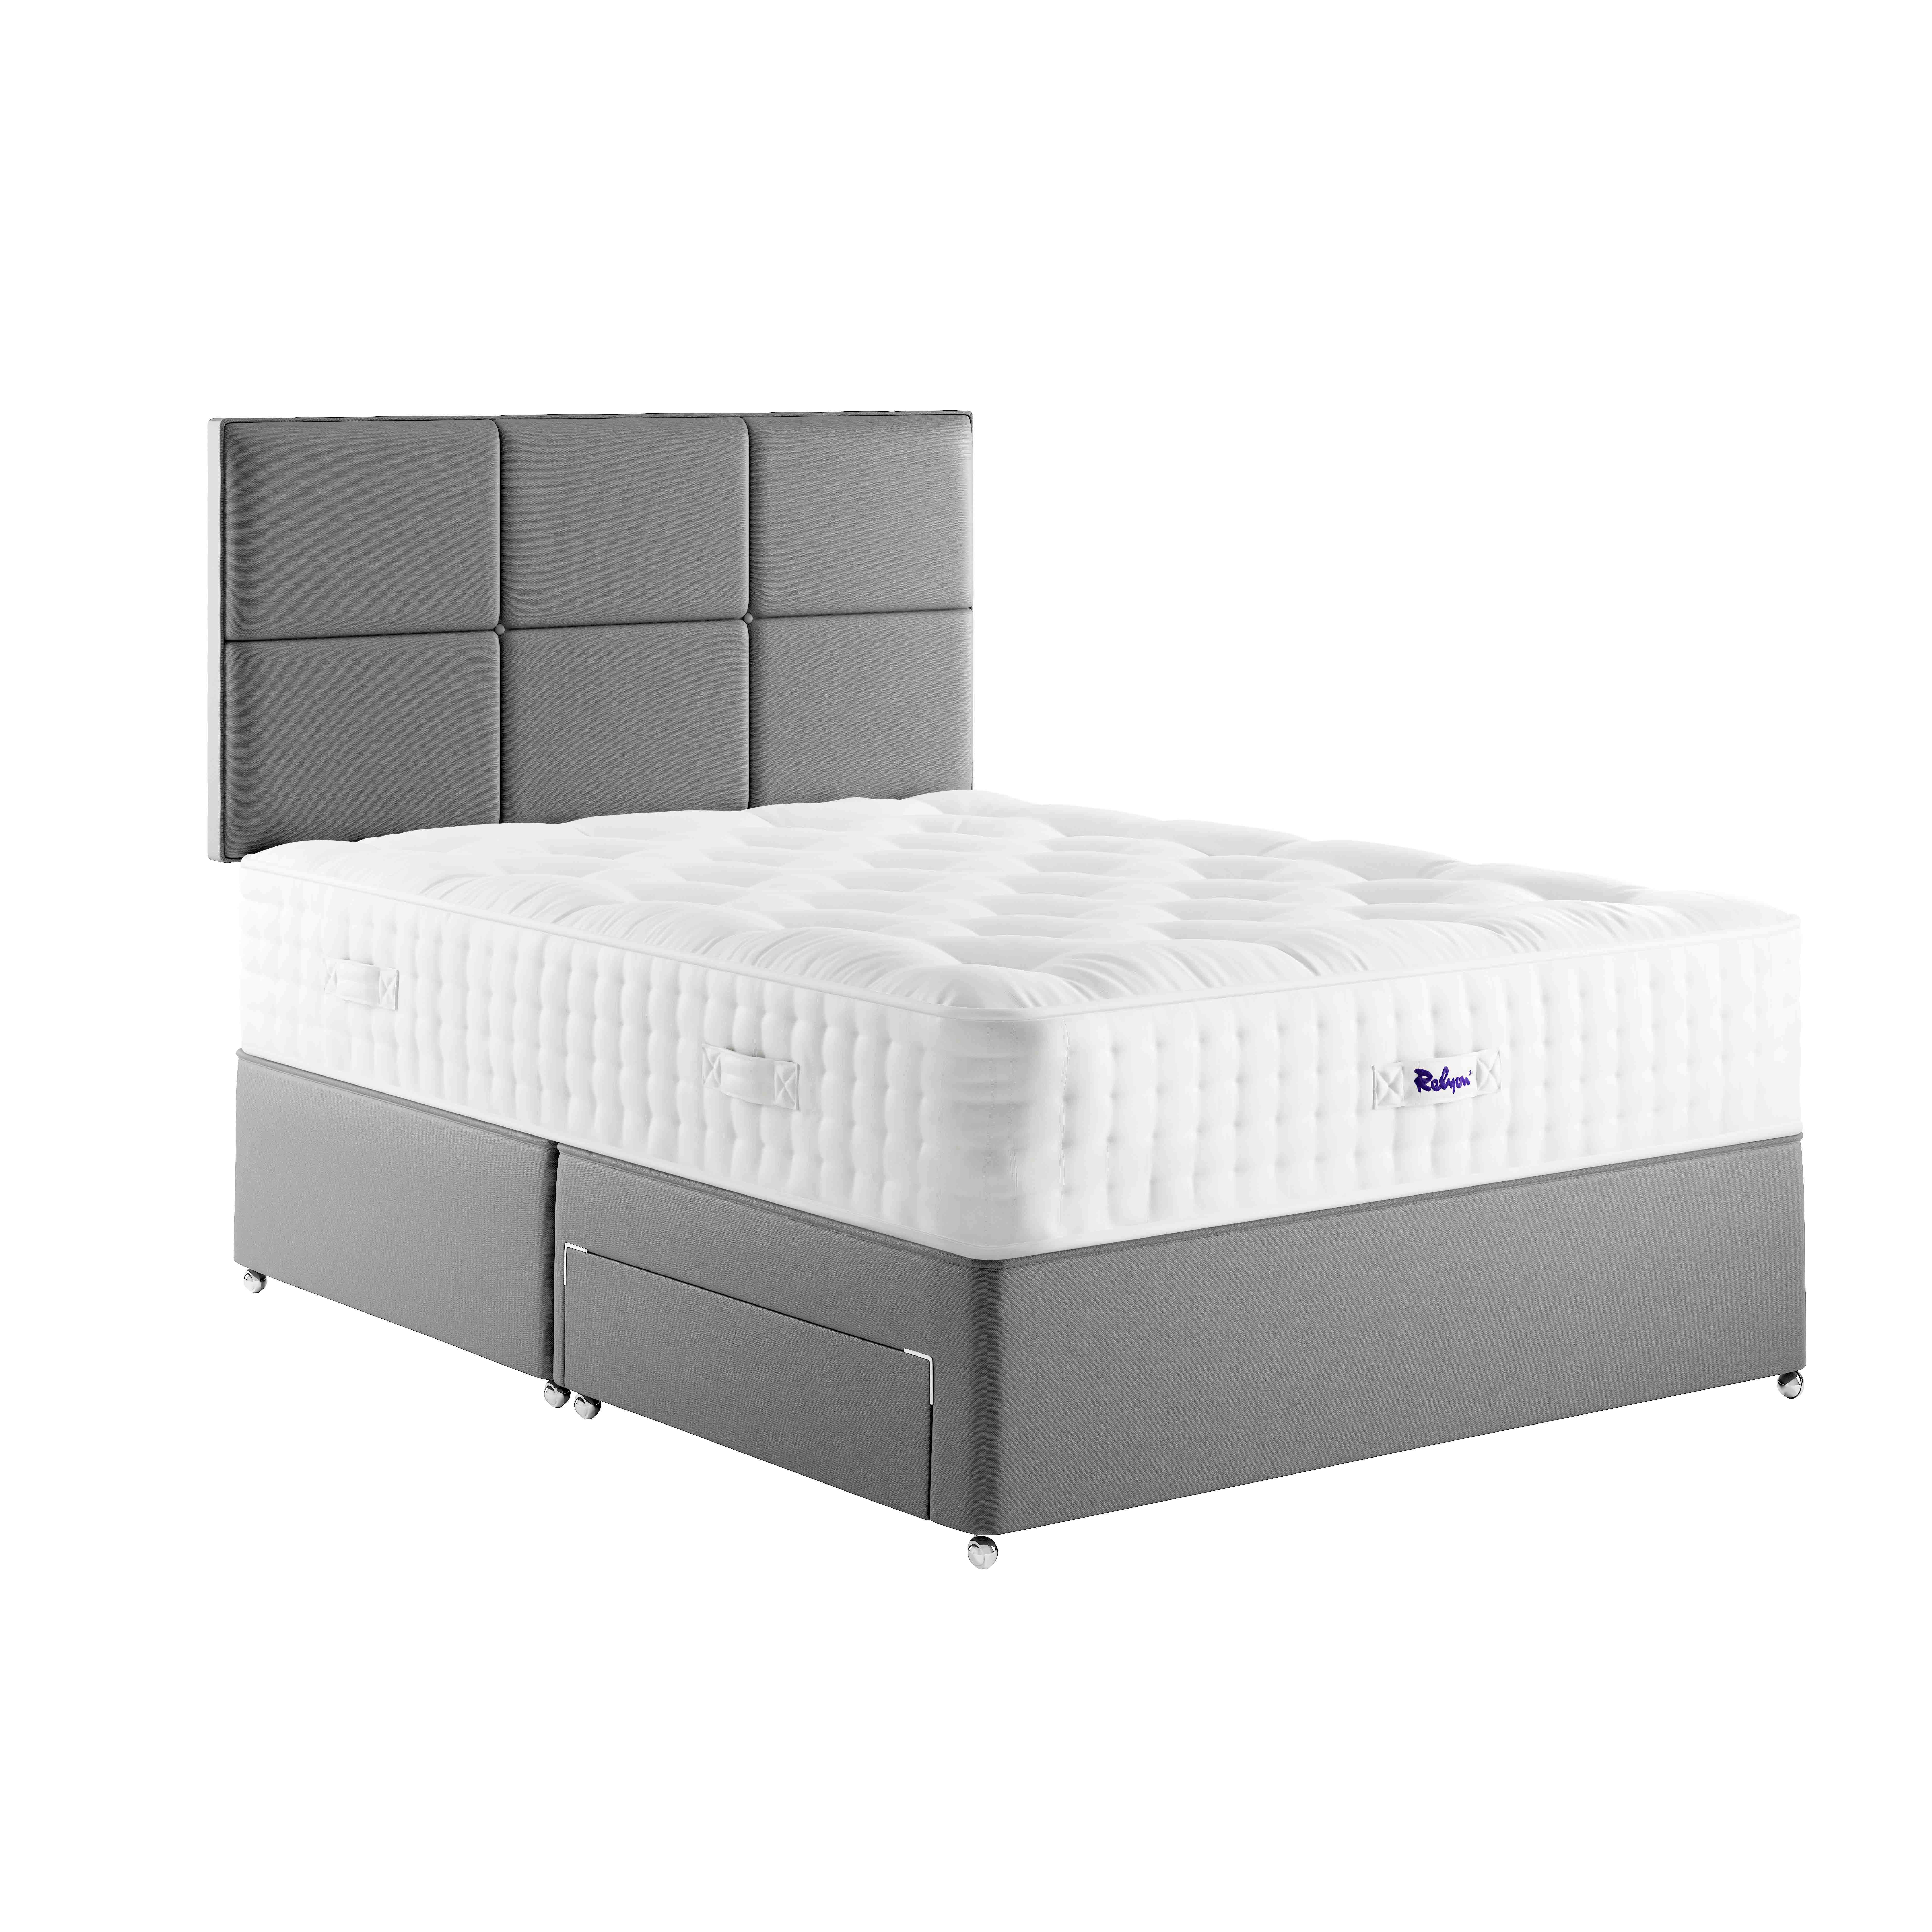 Bed Sales Online: Relyon Linton Ortho 1800 Mattress